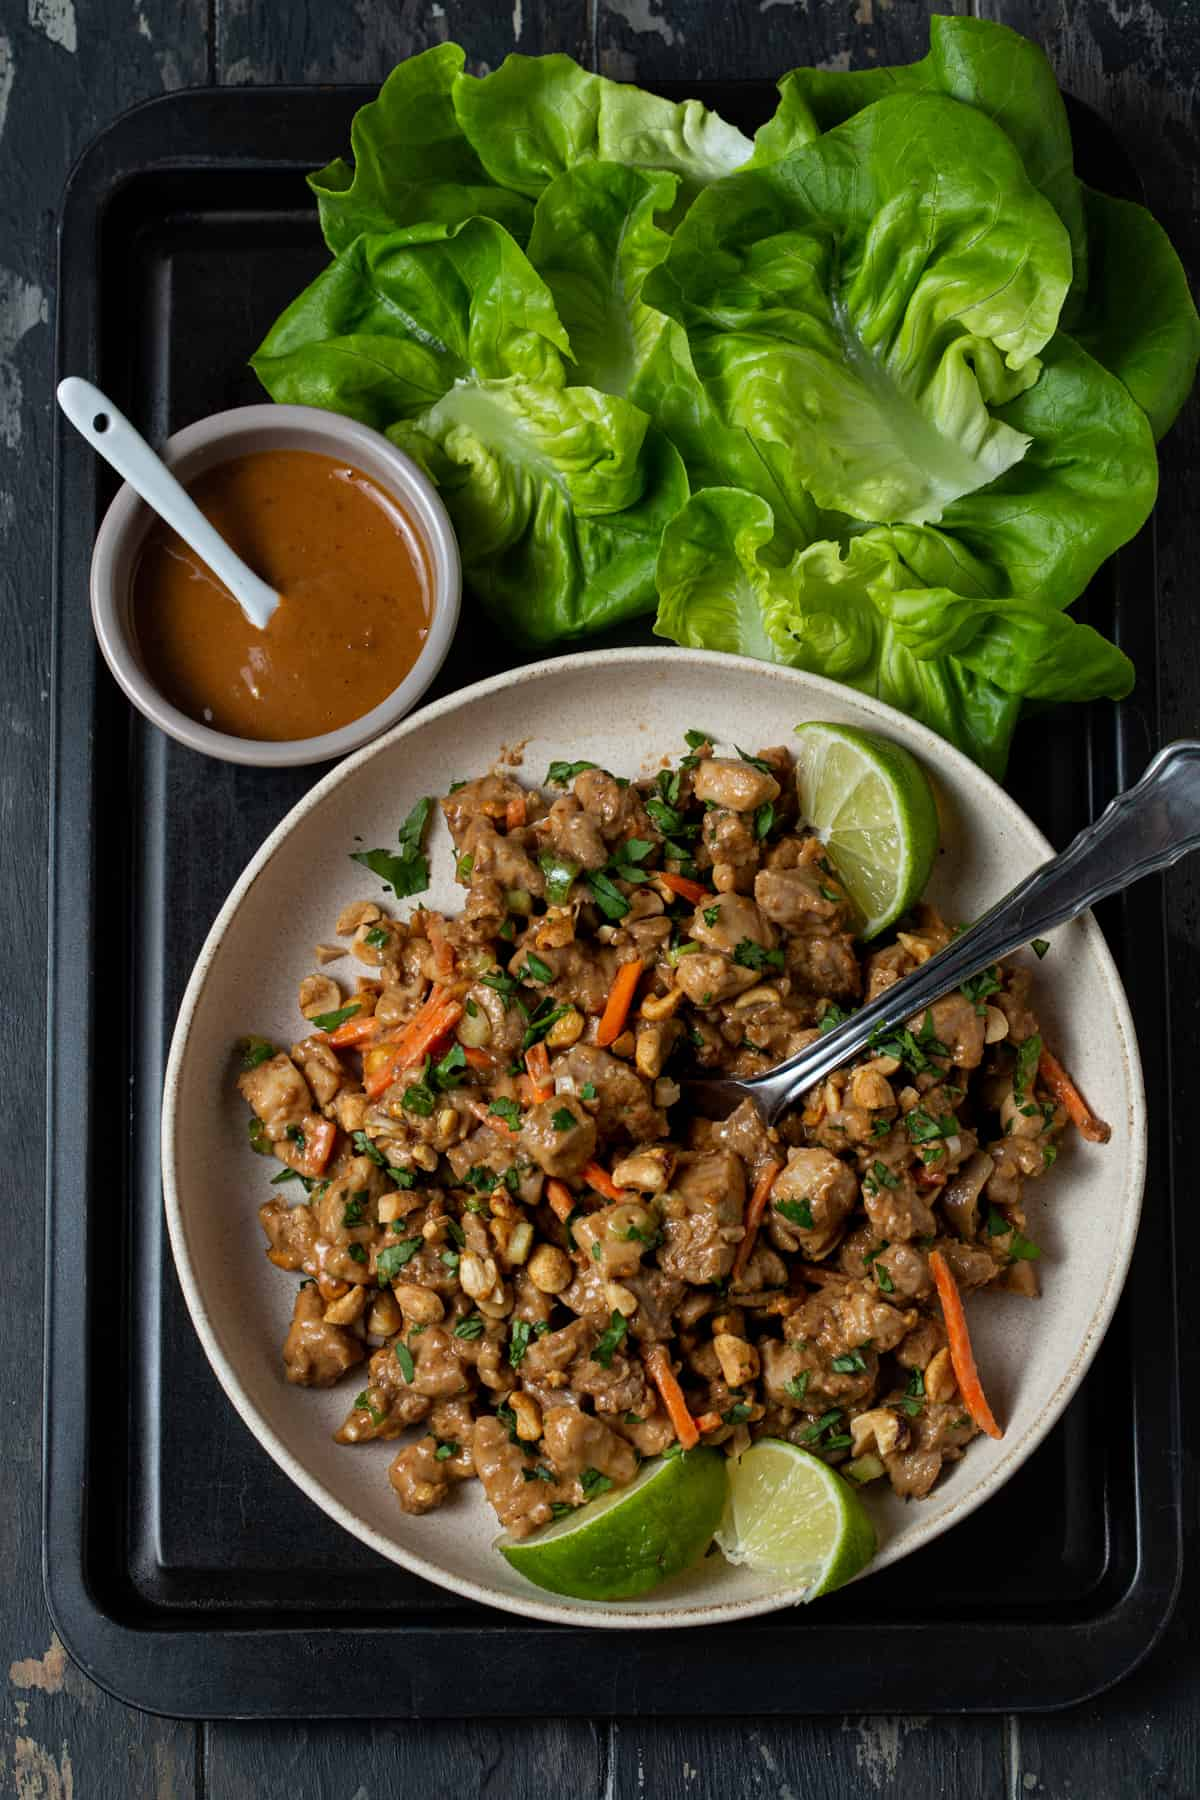 chopped chicken filling for lettuce wraps , bowl of peanut sauce and lettuce cups on black tray.